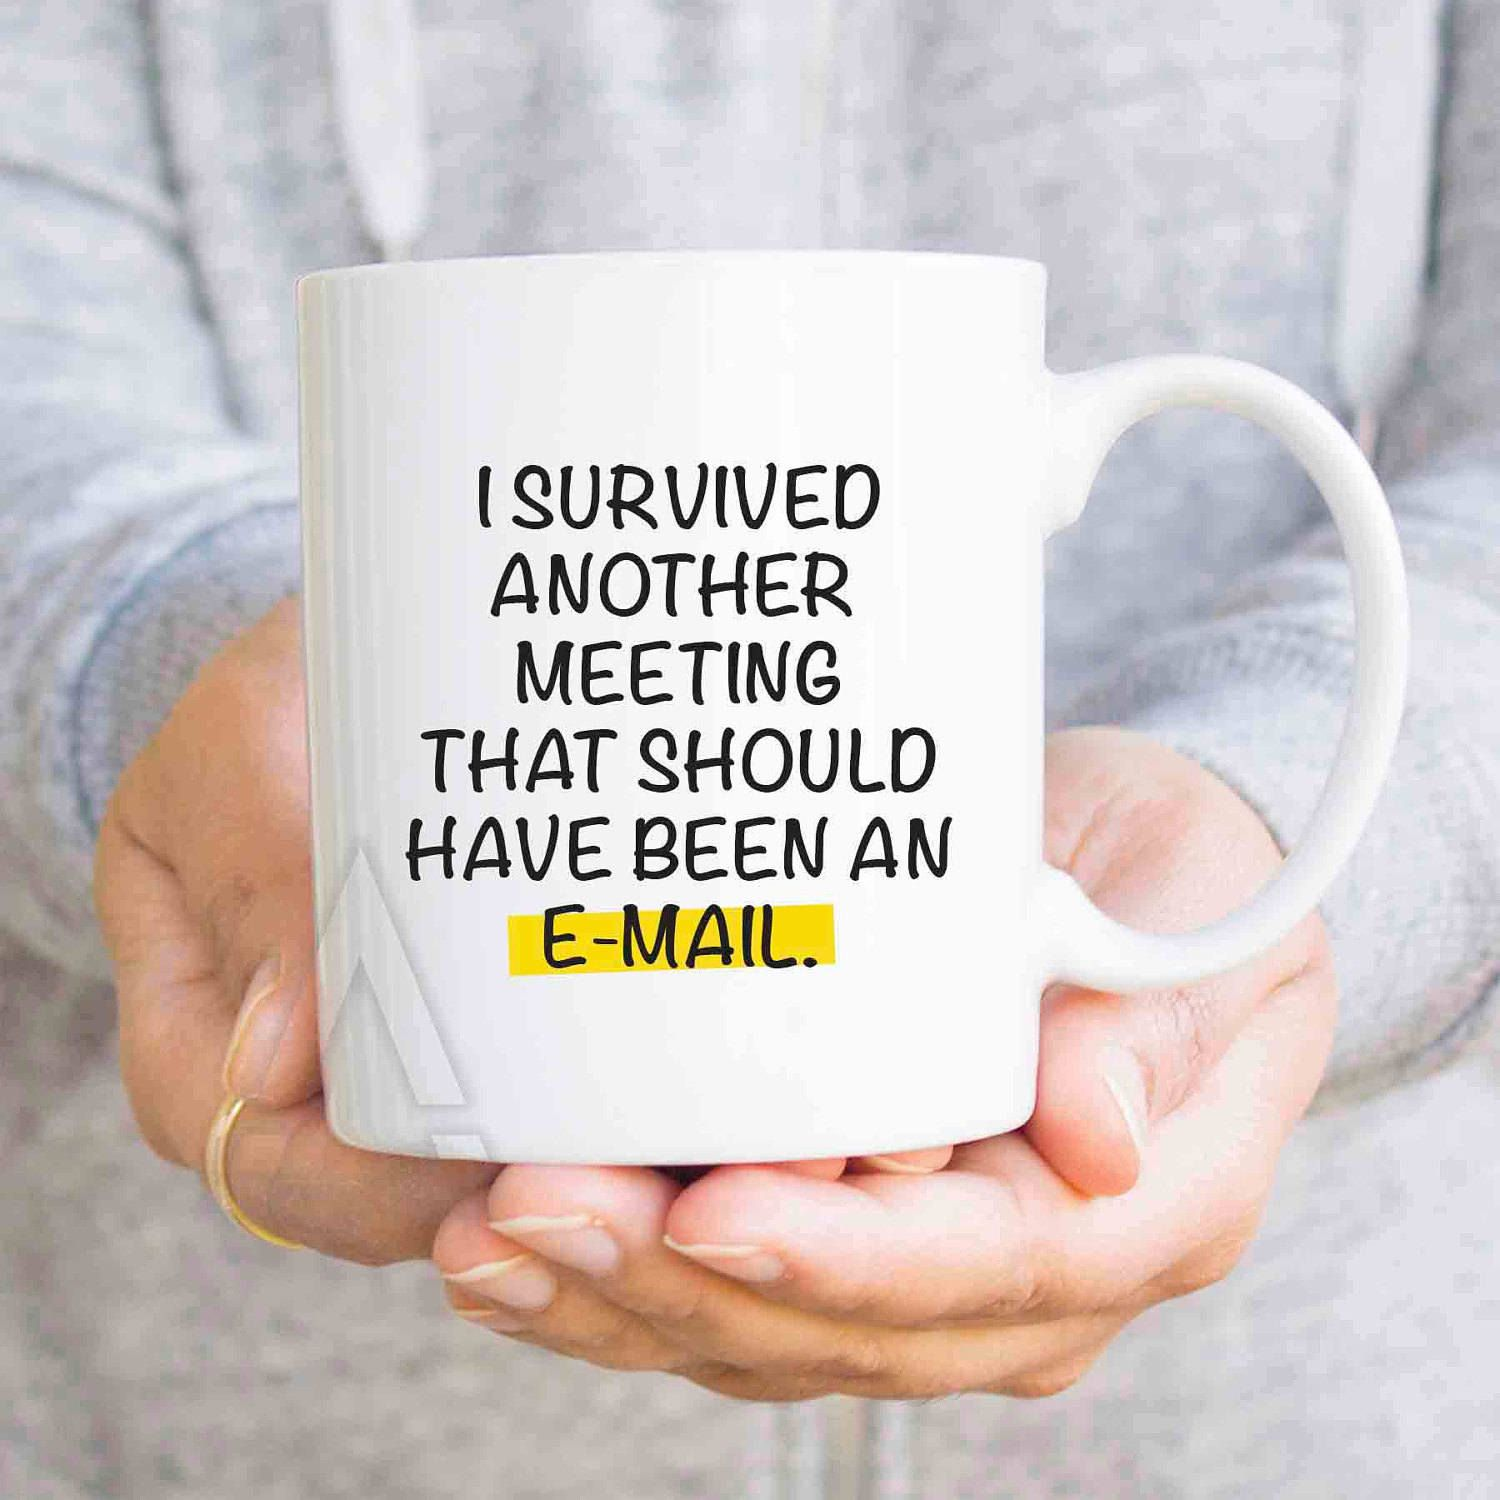 Funny Birthday Gifts For Coworkers I Survived Another Meeting Boss Workplace Thank You Colleague Gift Ideas Cheap MU476 By ArtRuss On Etsy